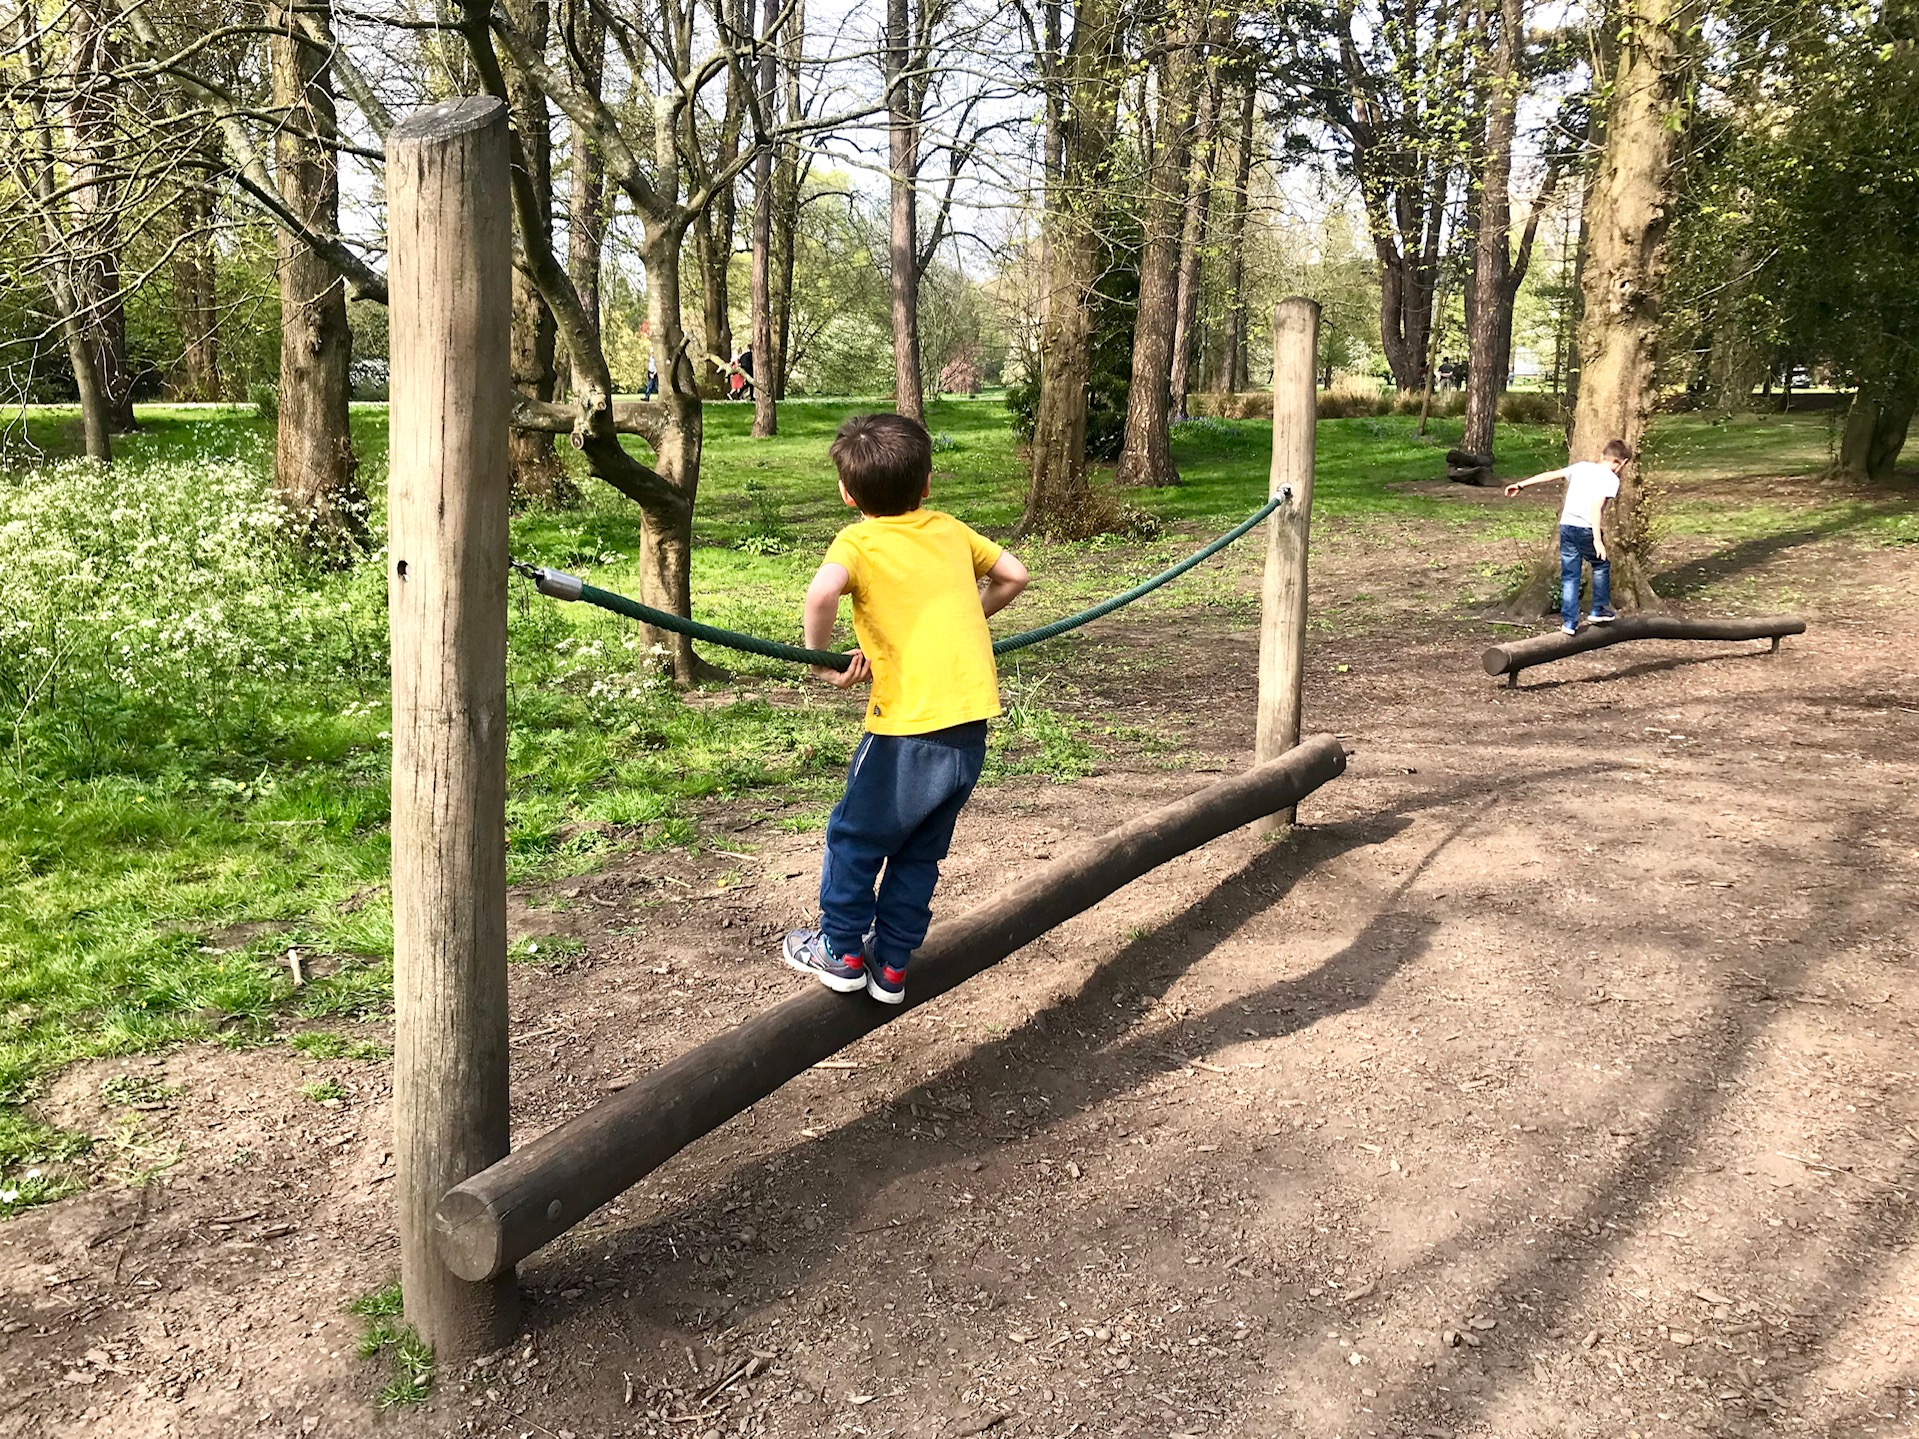 Wooden playtrail at Bute Park Cardiff